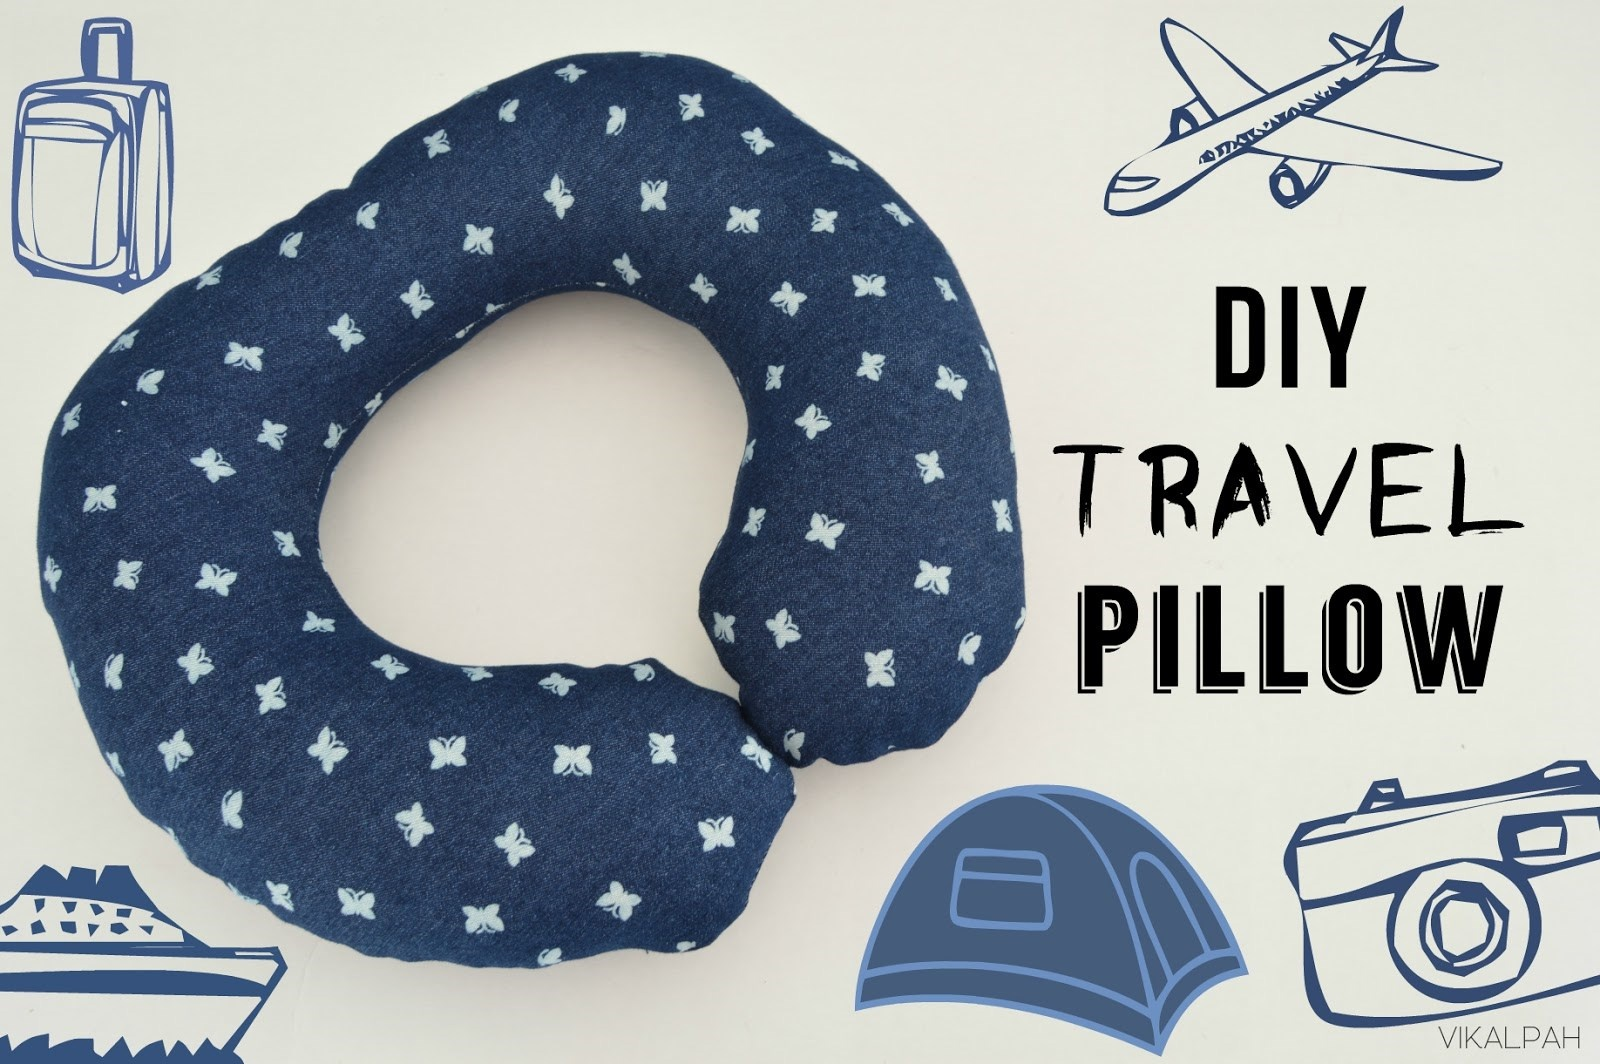 DIY Travel Pillow (DIY Pattern included)